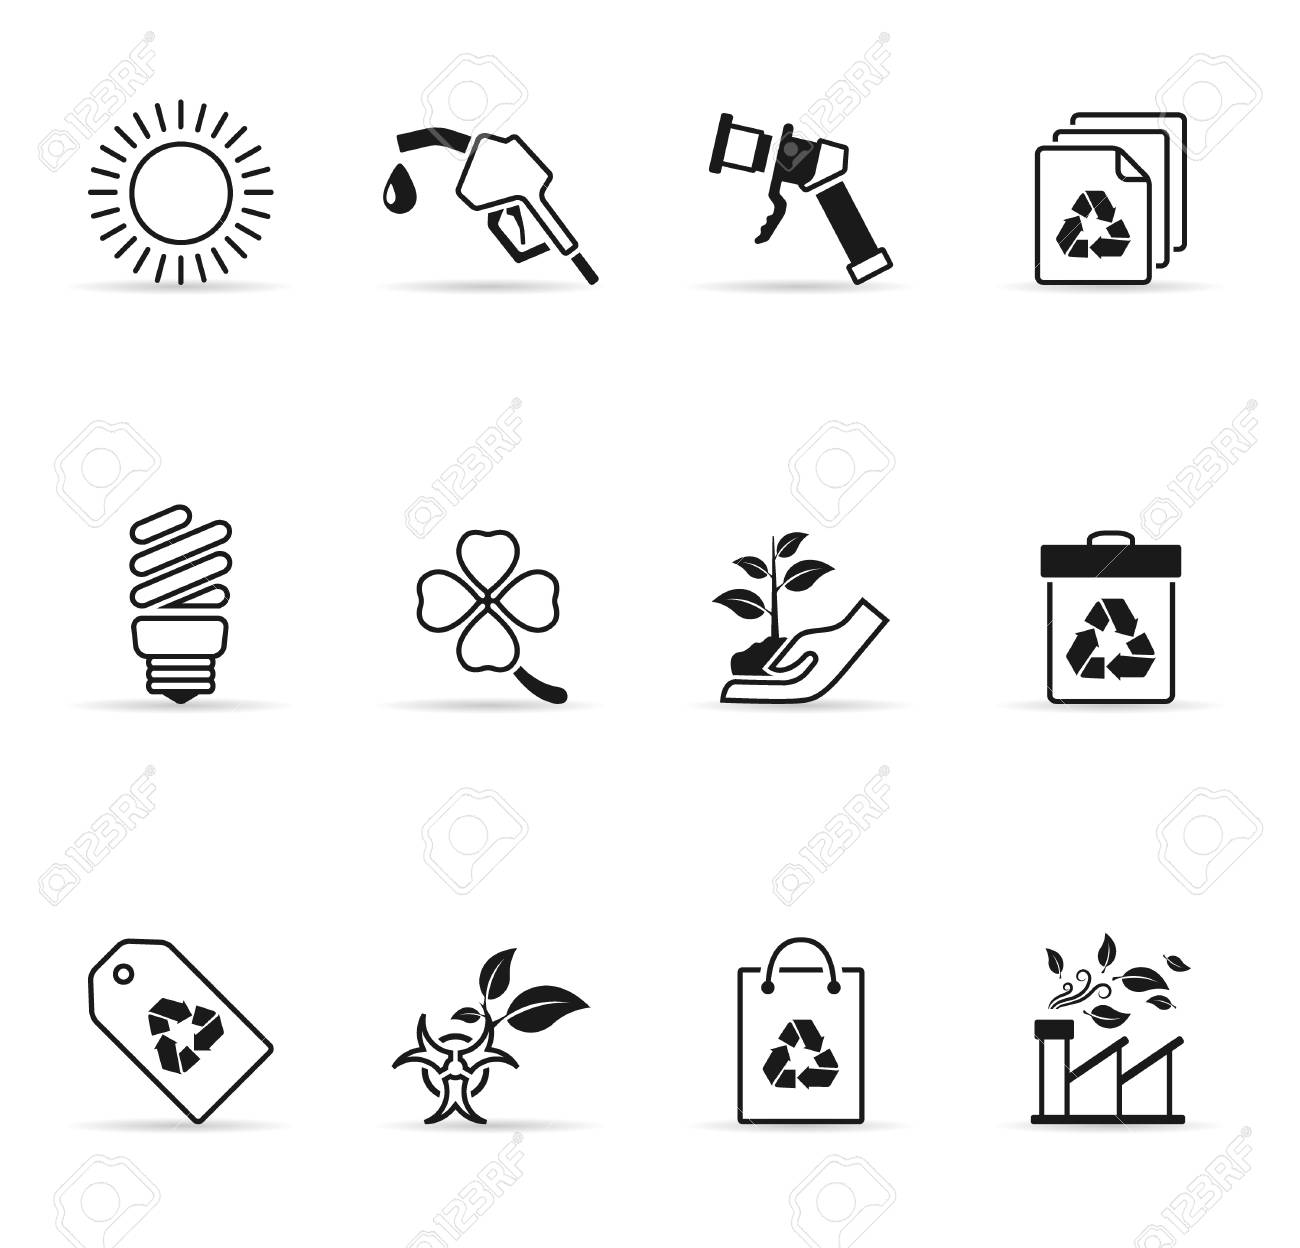 Environment  icons in single color Stock Vector - 14494982